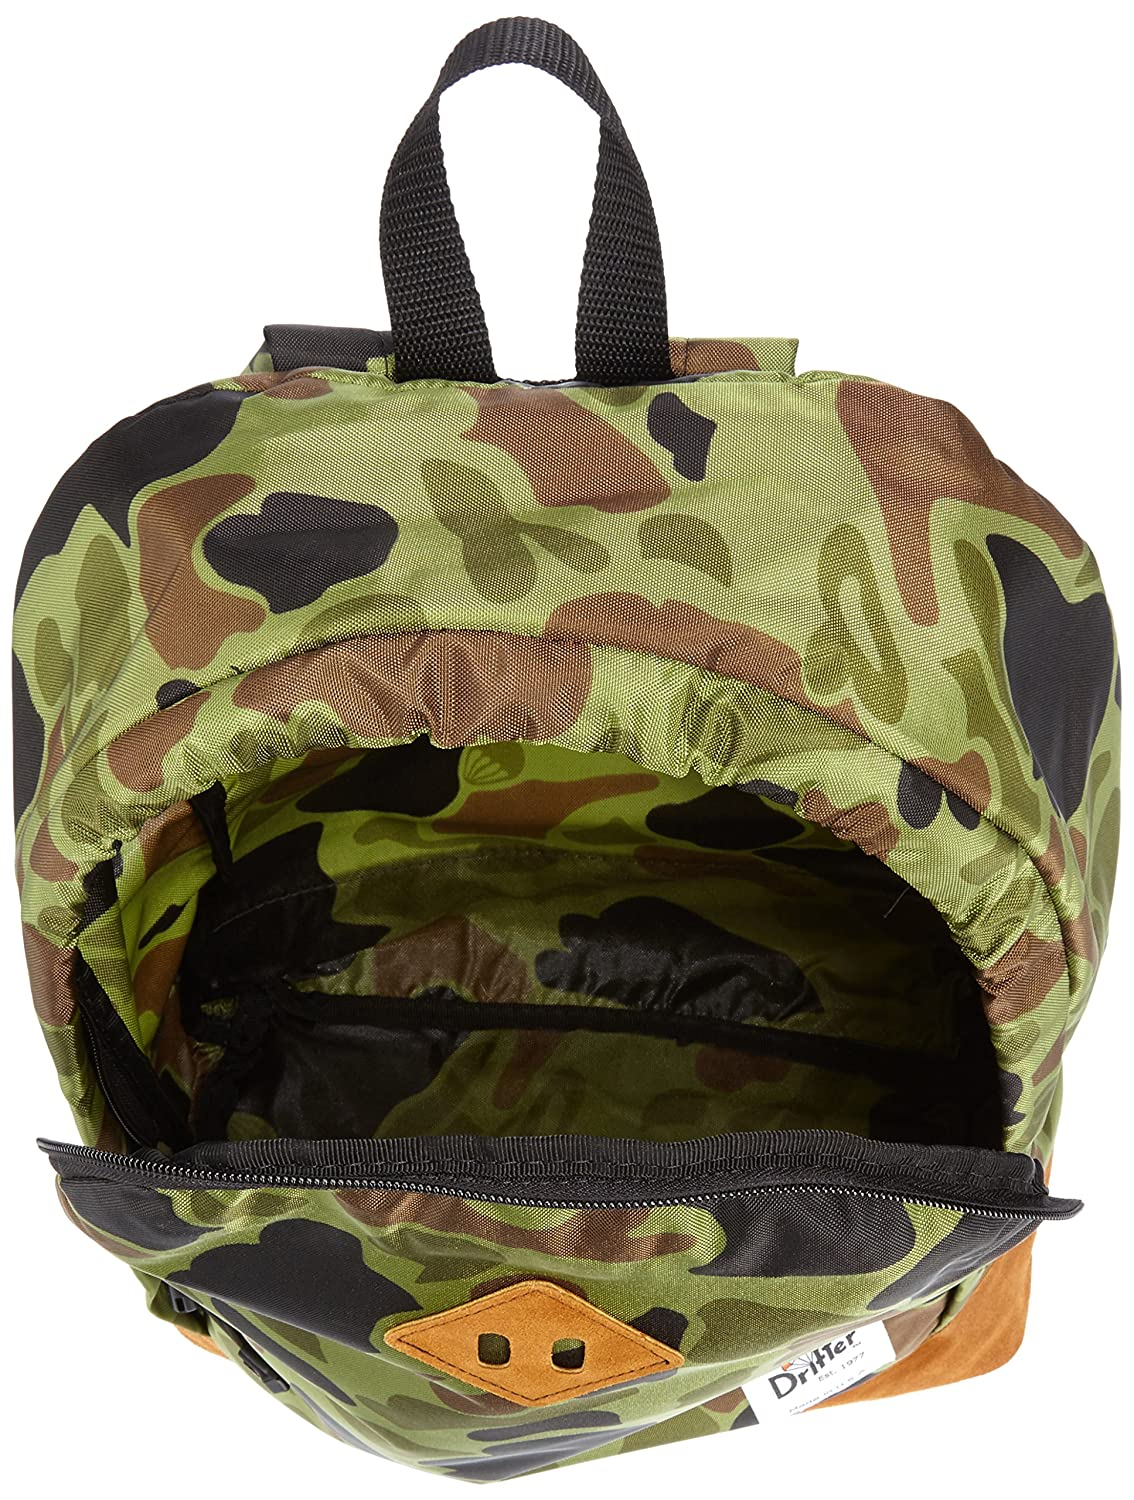 Drifter Sac à dos casual, MulticoloreDUCK HUNTER, BACK COUNTRY PACK